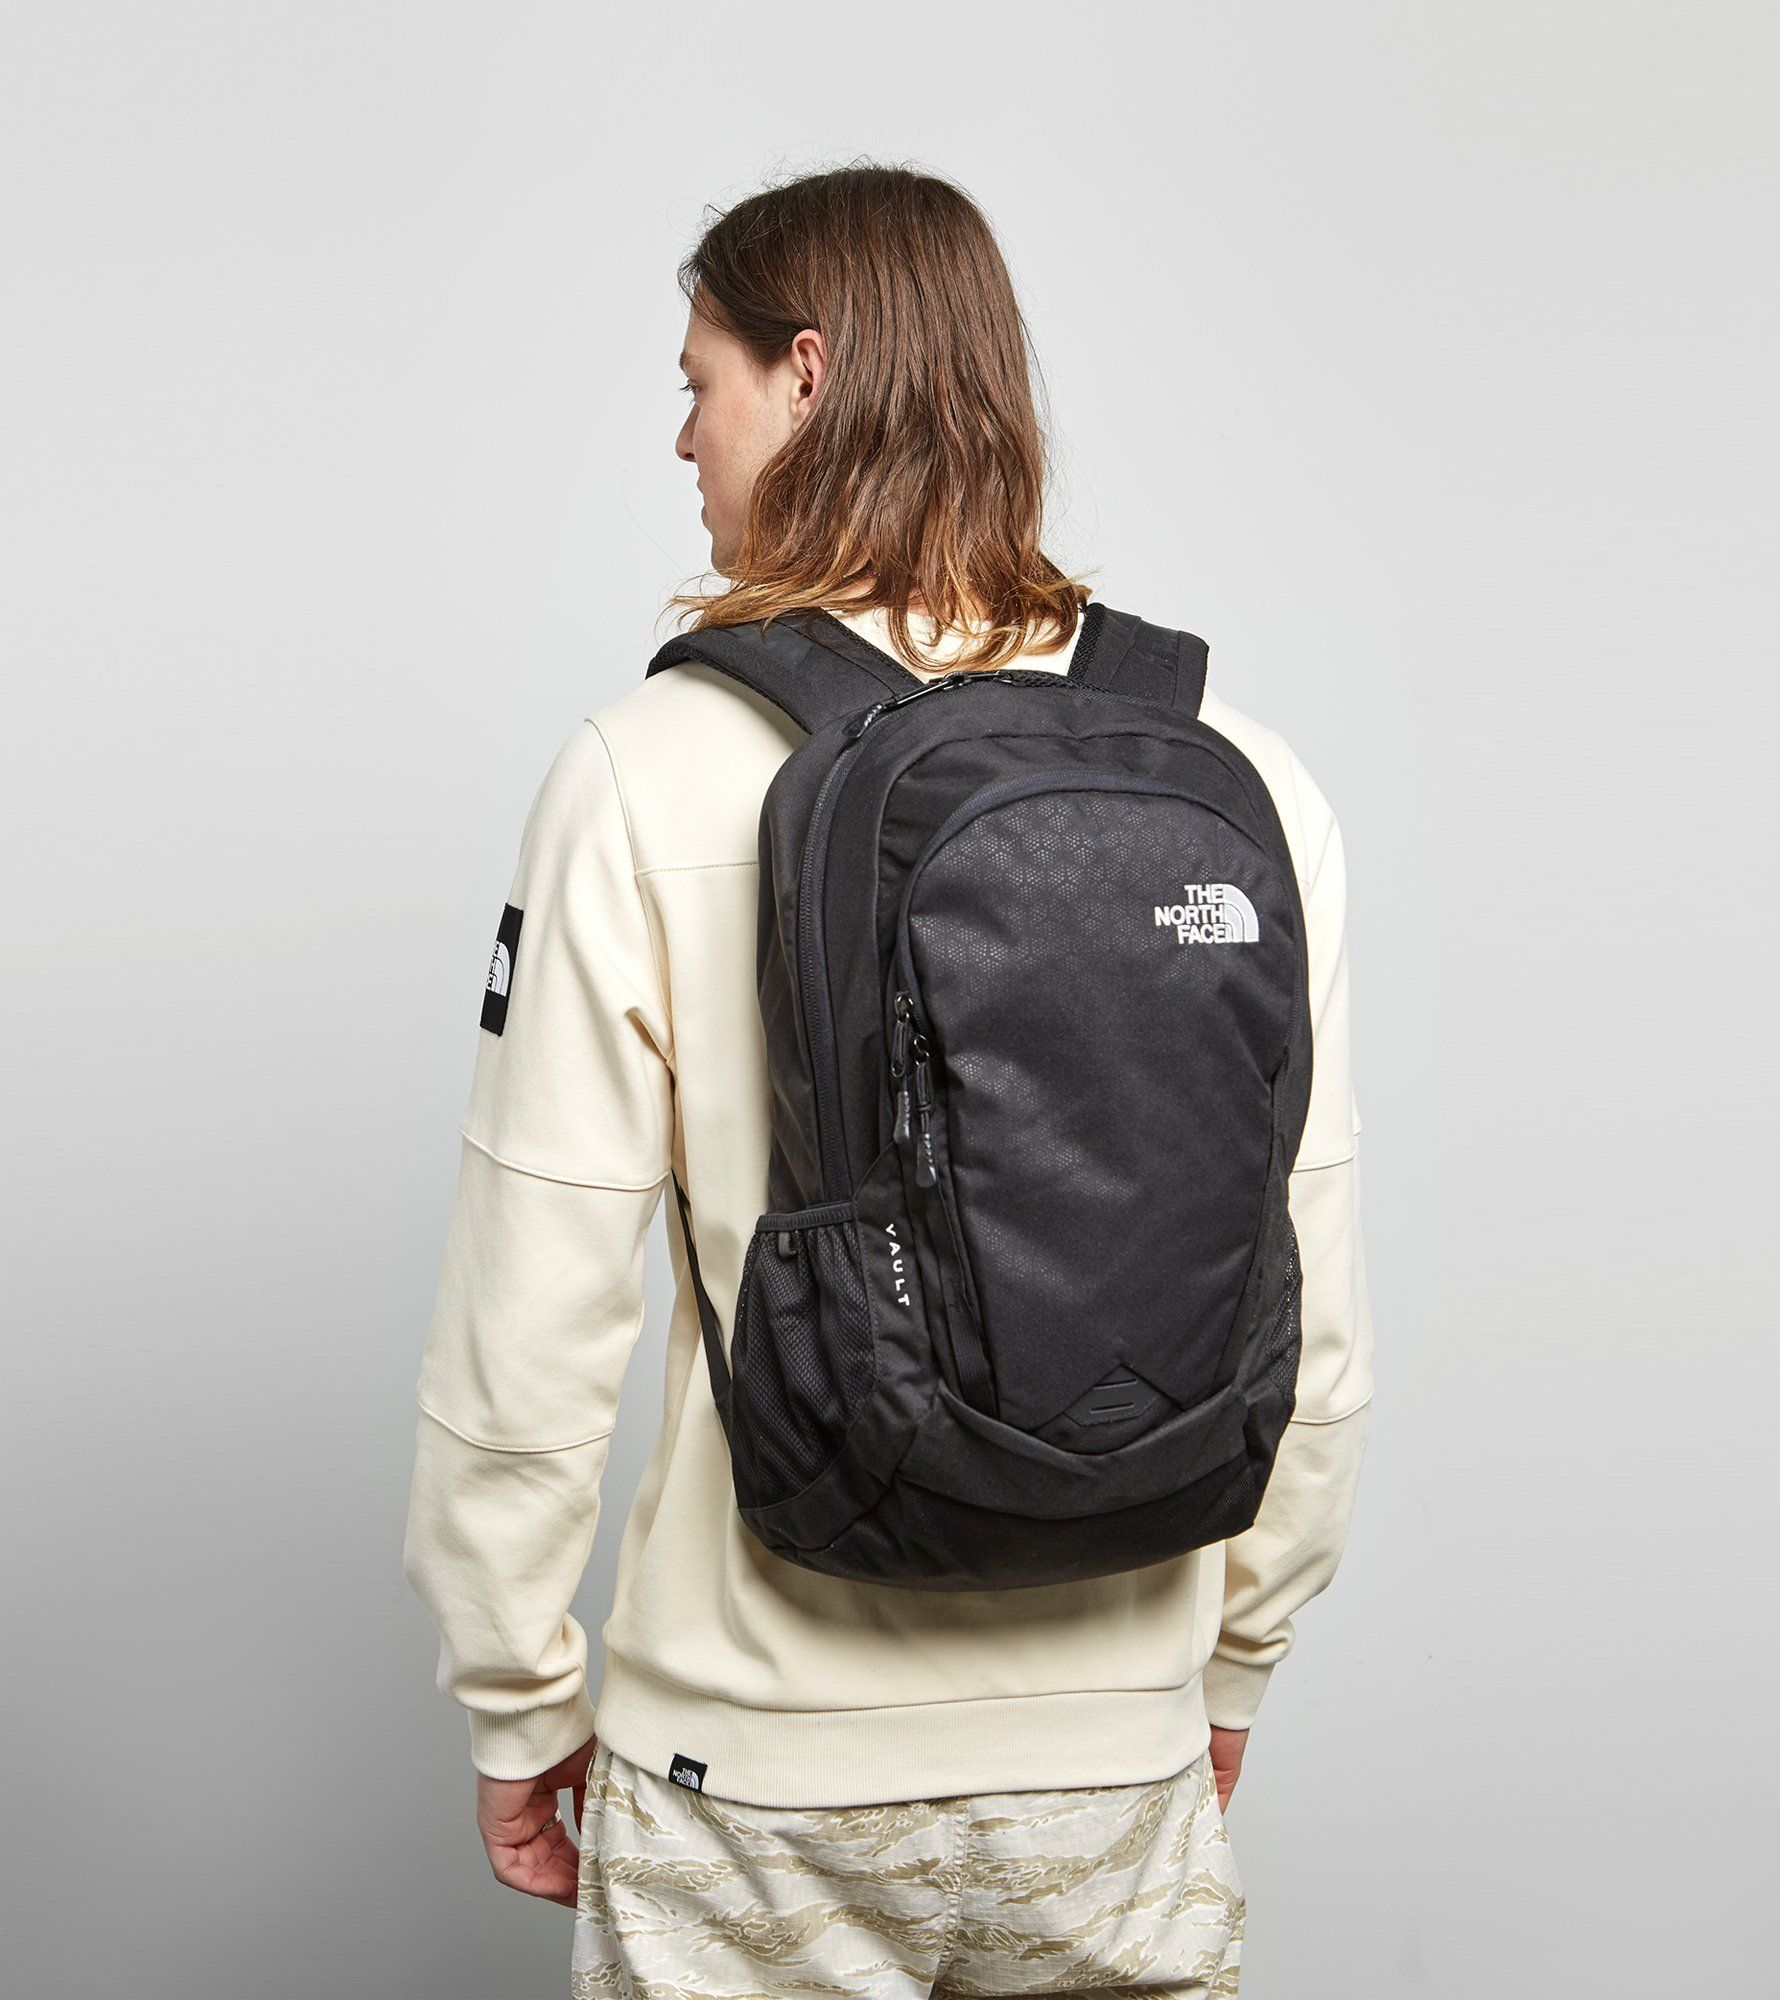 c1789aec84b5 Womens Vault Backpack North Face- Fenix Toulouse Handball